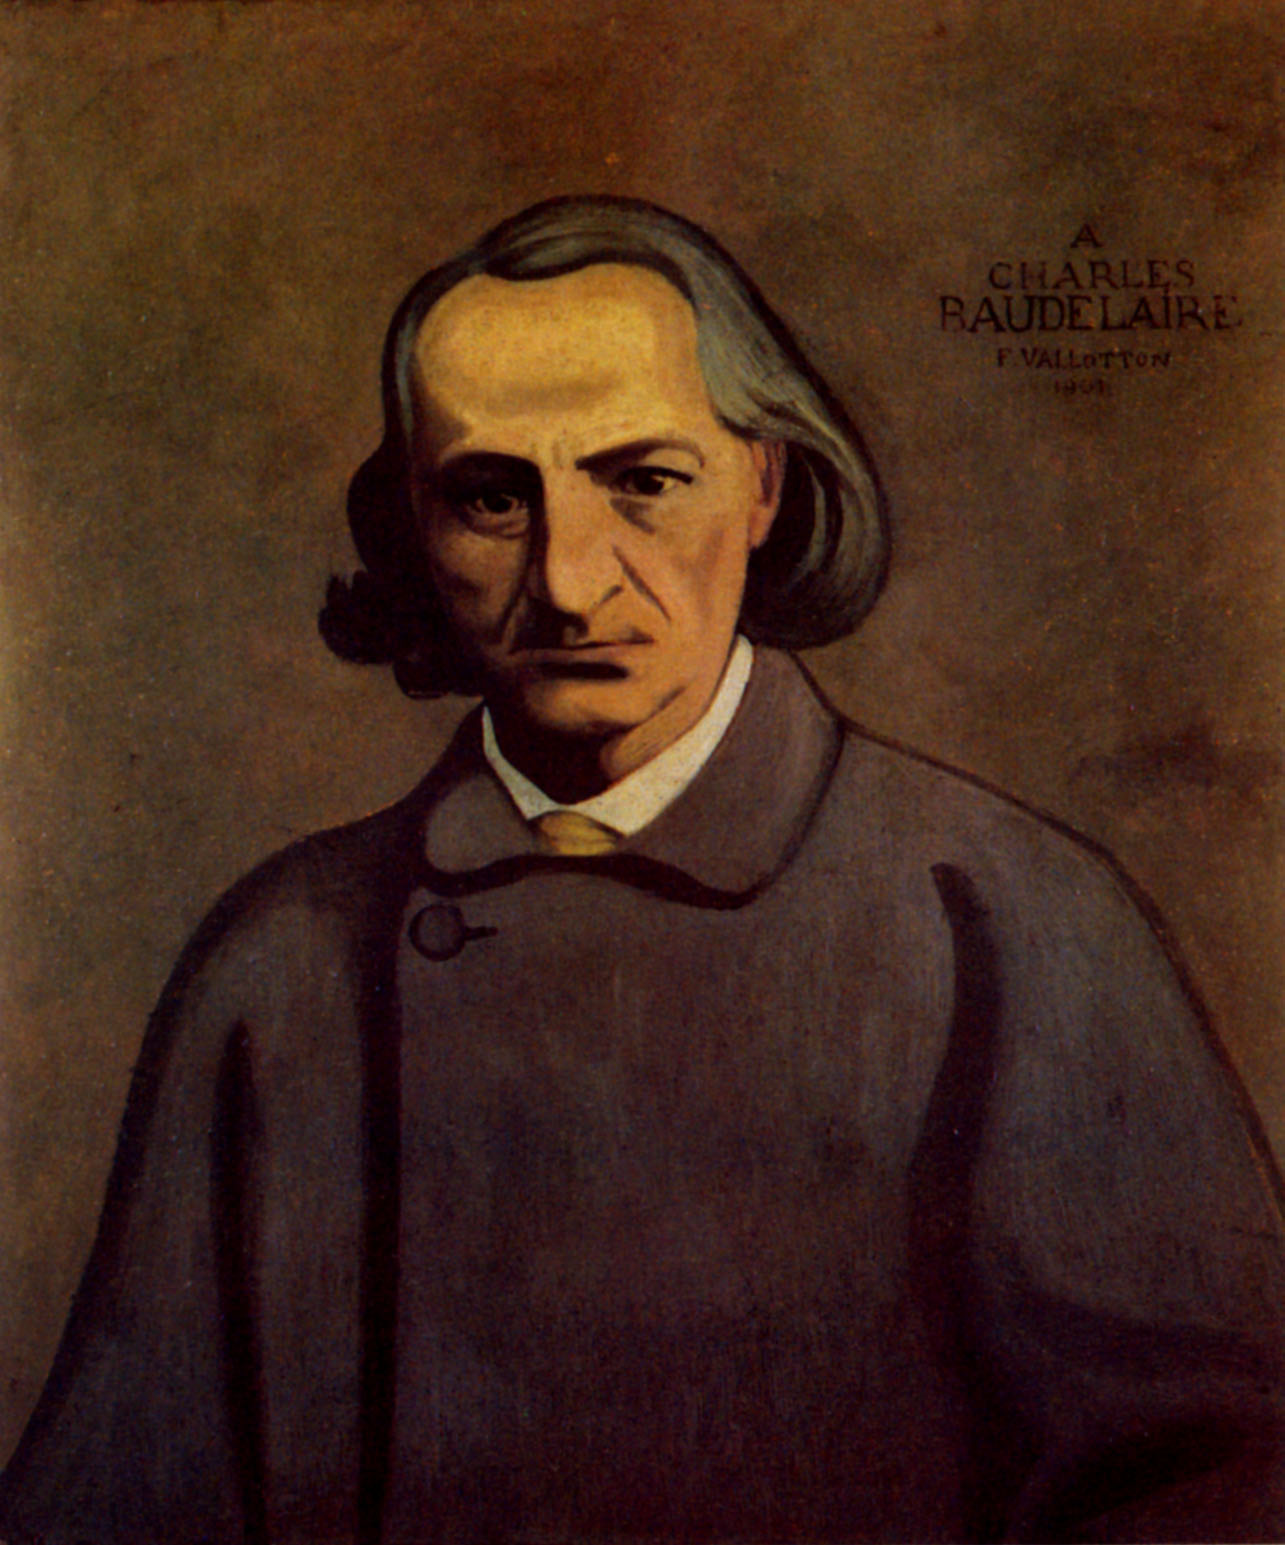 the writer of modern life essays on charles baudelaire Indeed, in the painter of modern life, an essay baudelaire wrote in 1863, he makes several acute observations about his sense of alienation that definitely establish him as a modern writer stimulating reading.